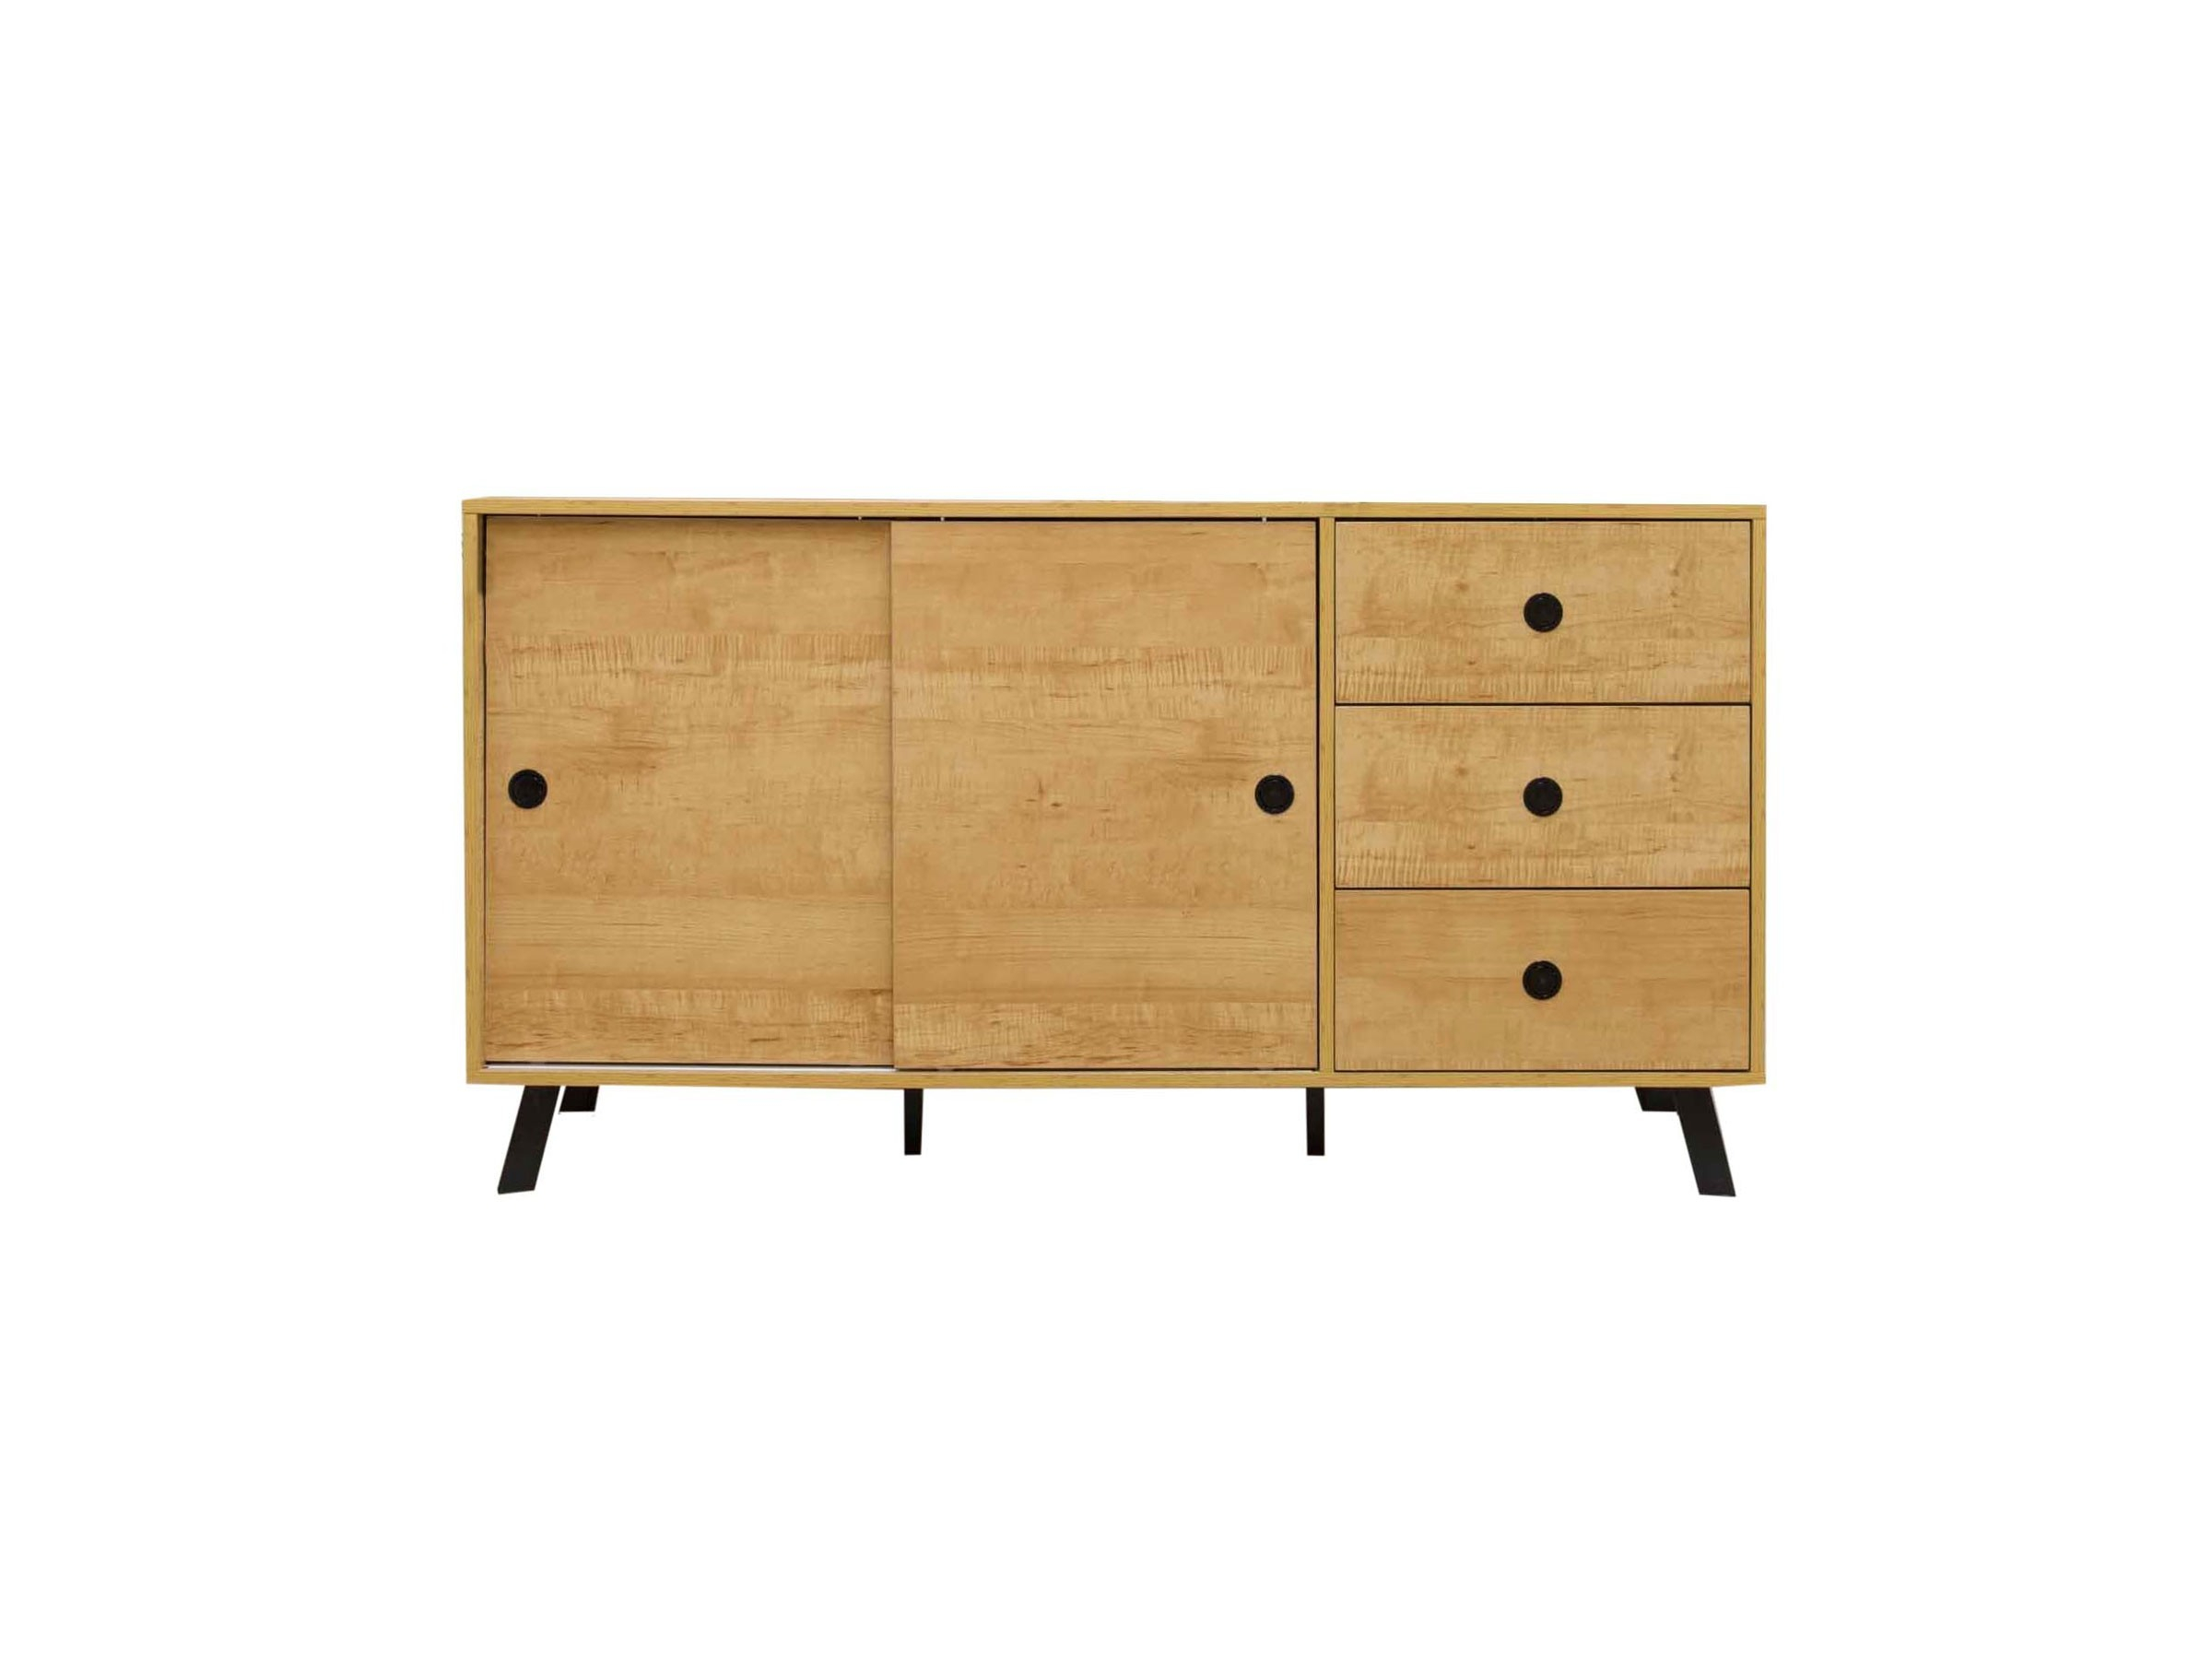 Kirra Buffet Pertaining To Contemporary Wooden Buffets With One Side Door Storage Cabinets And Two Drawers (View 21 of 30)